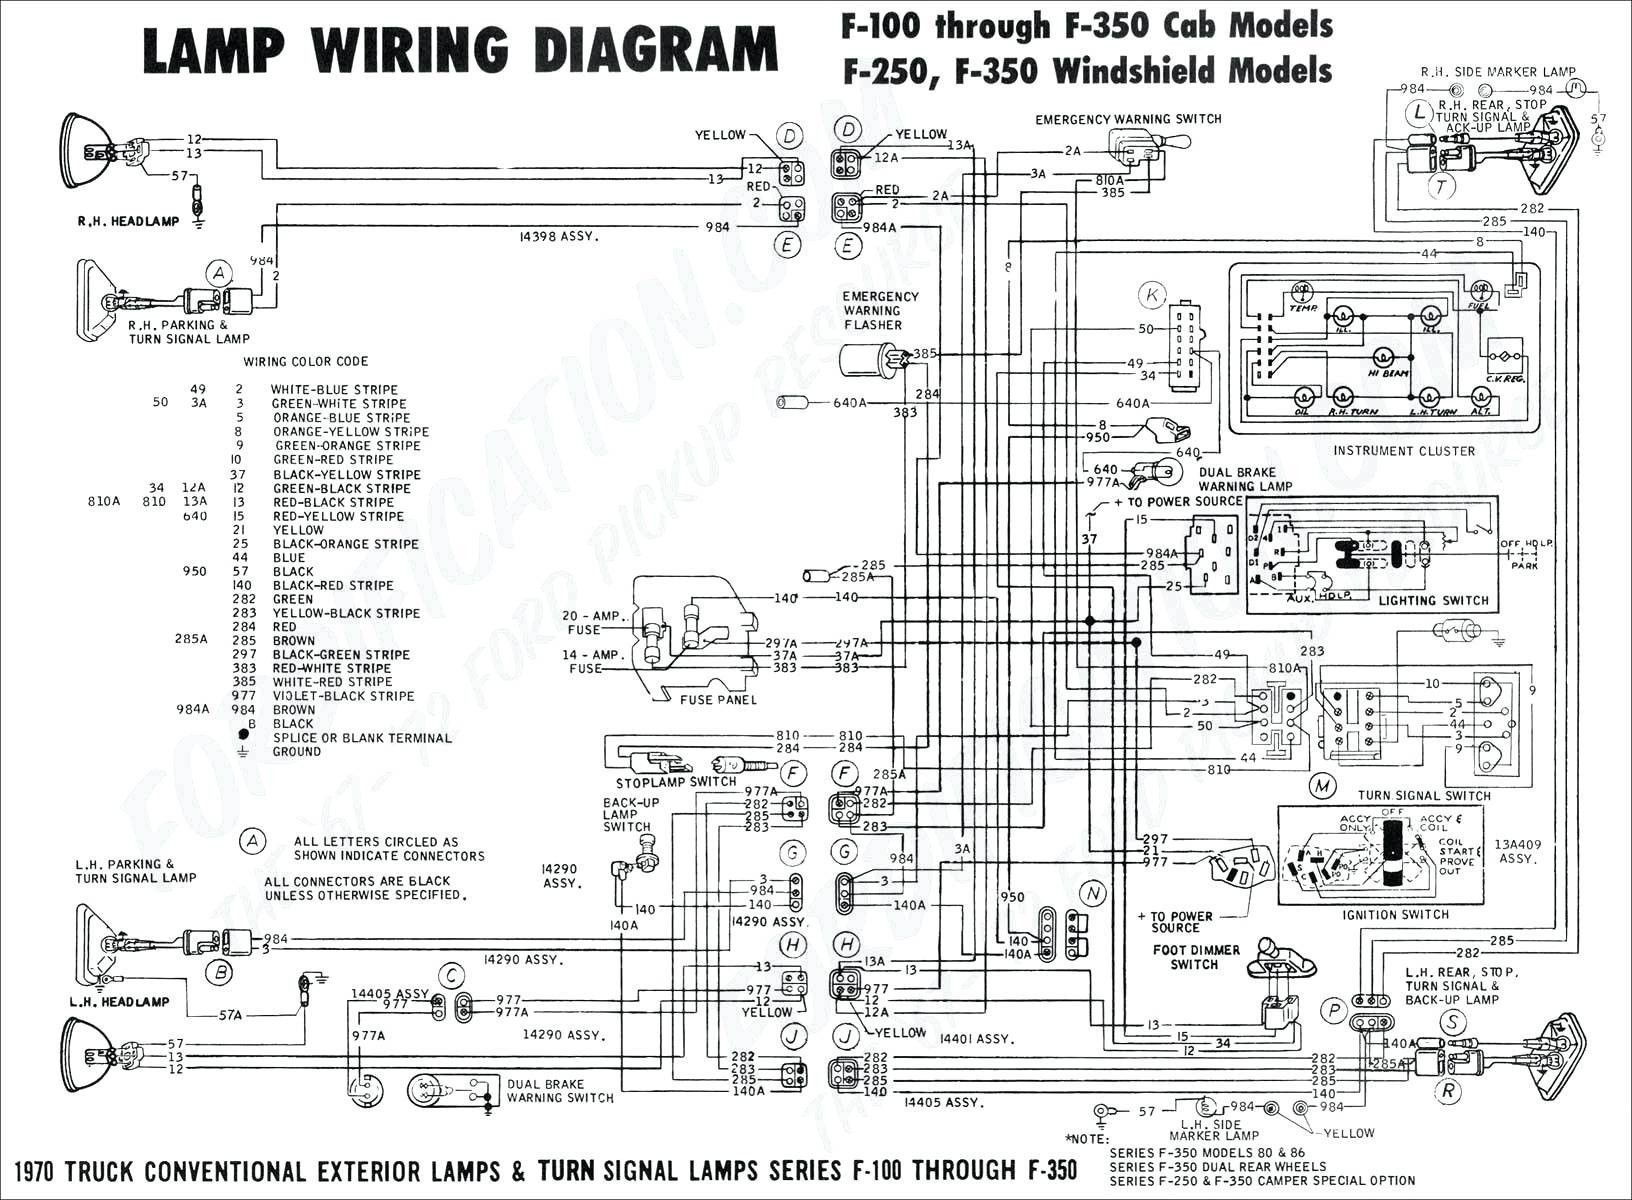 2003 Silverado Tail Light Wiring Diagram | Trailer wiring diagram,  Electrical wiring diagram, Circuit diagramPinterest